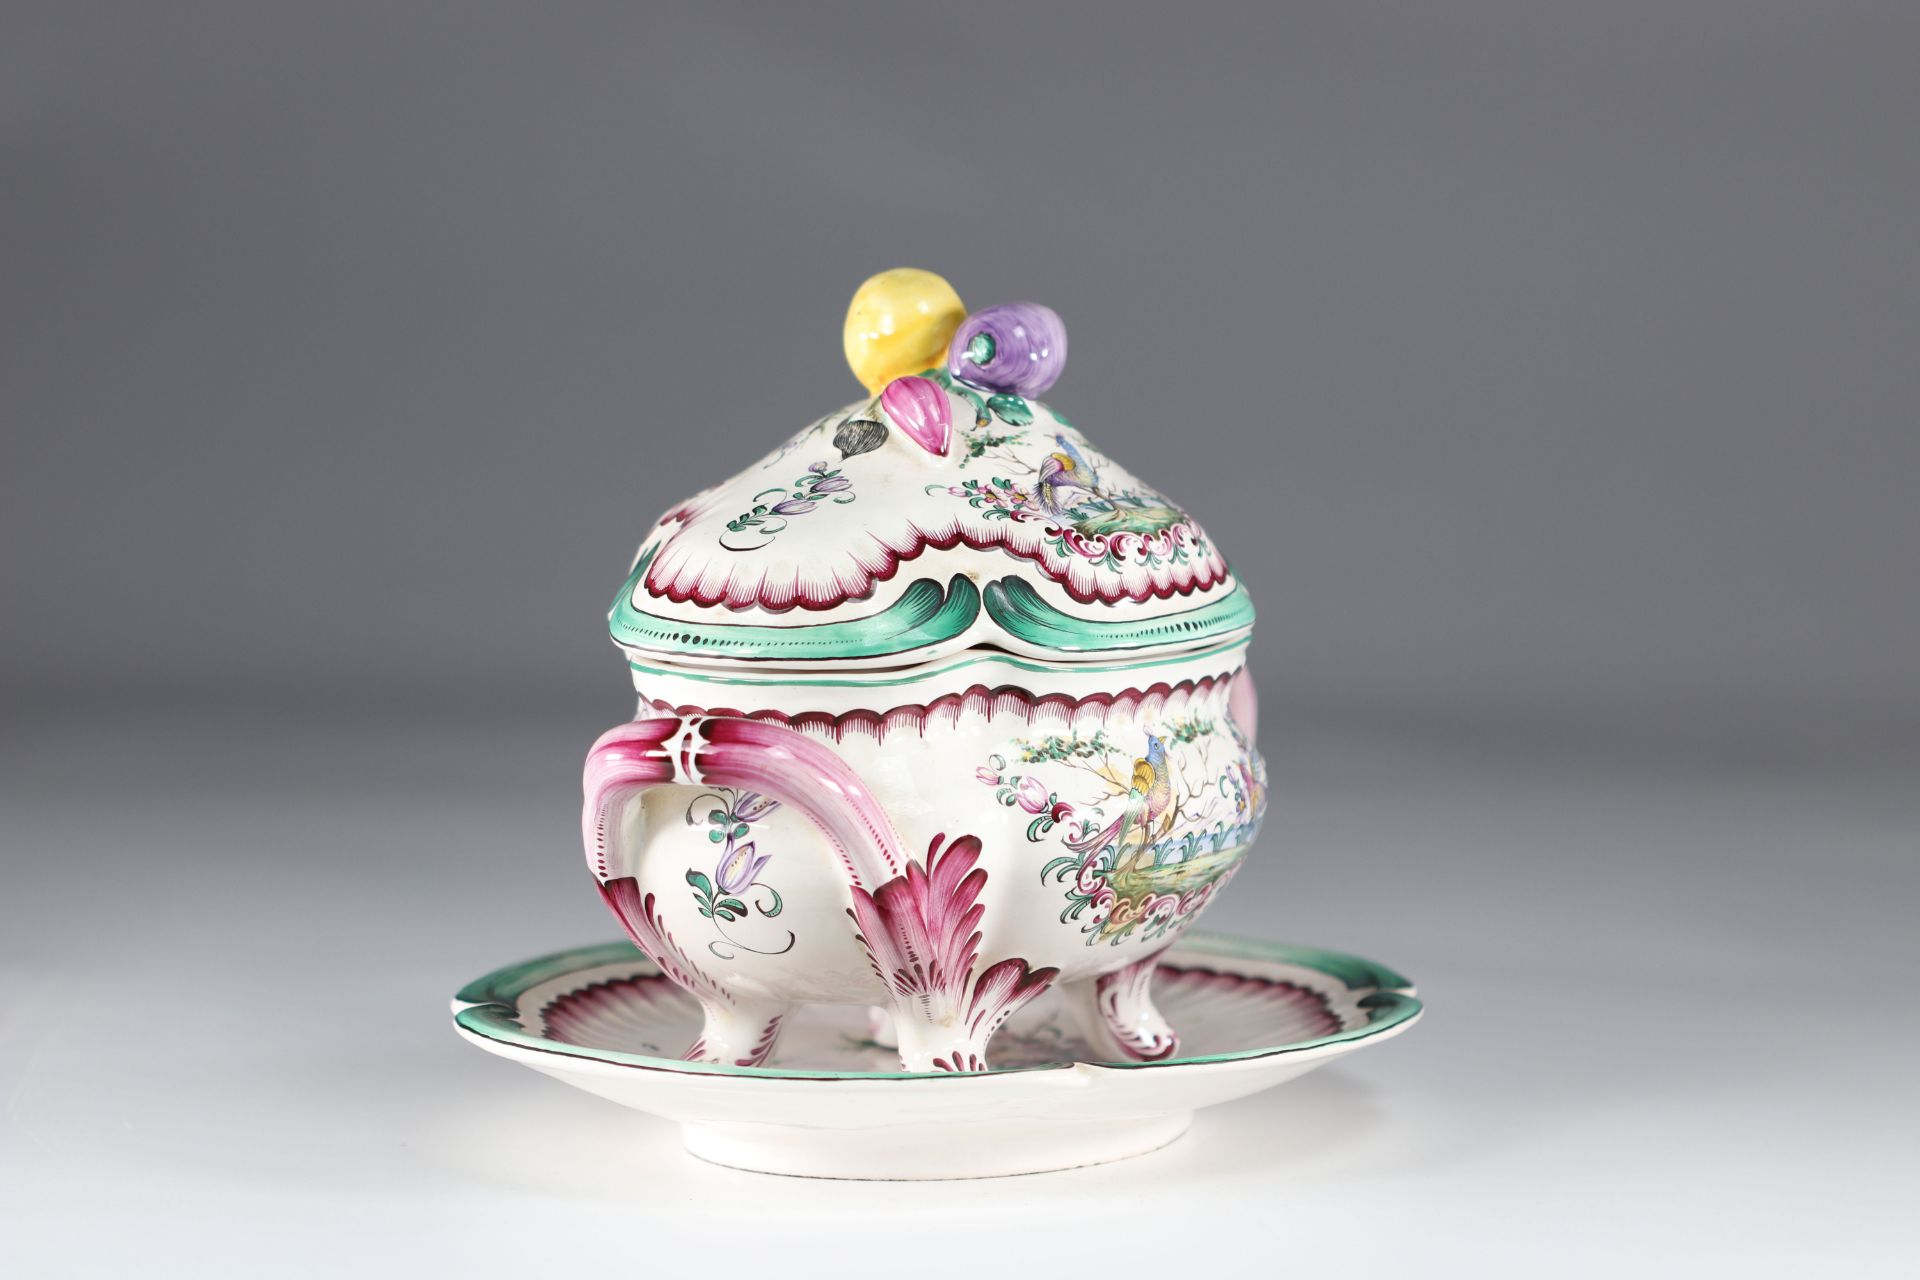 Aprey vegetable covered in earthenware with polychrome decoration, floral decoration and birds - Image 2 of 5